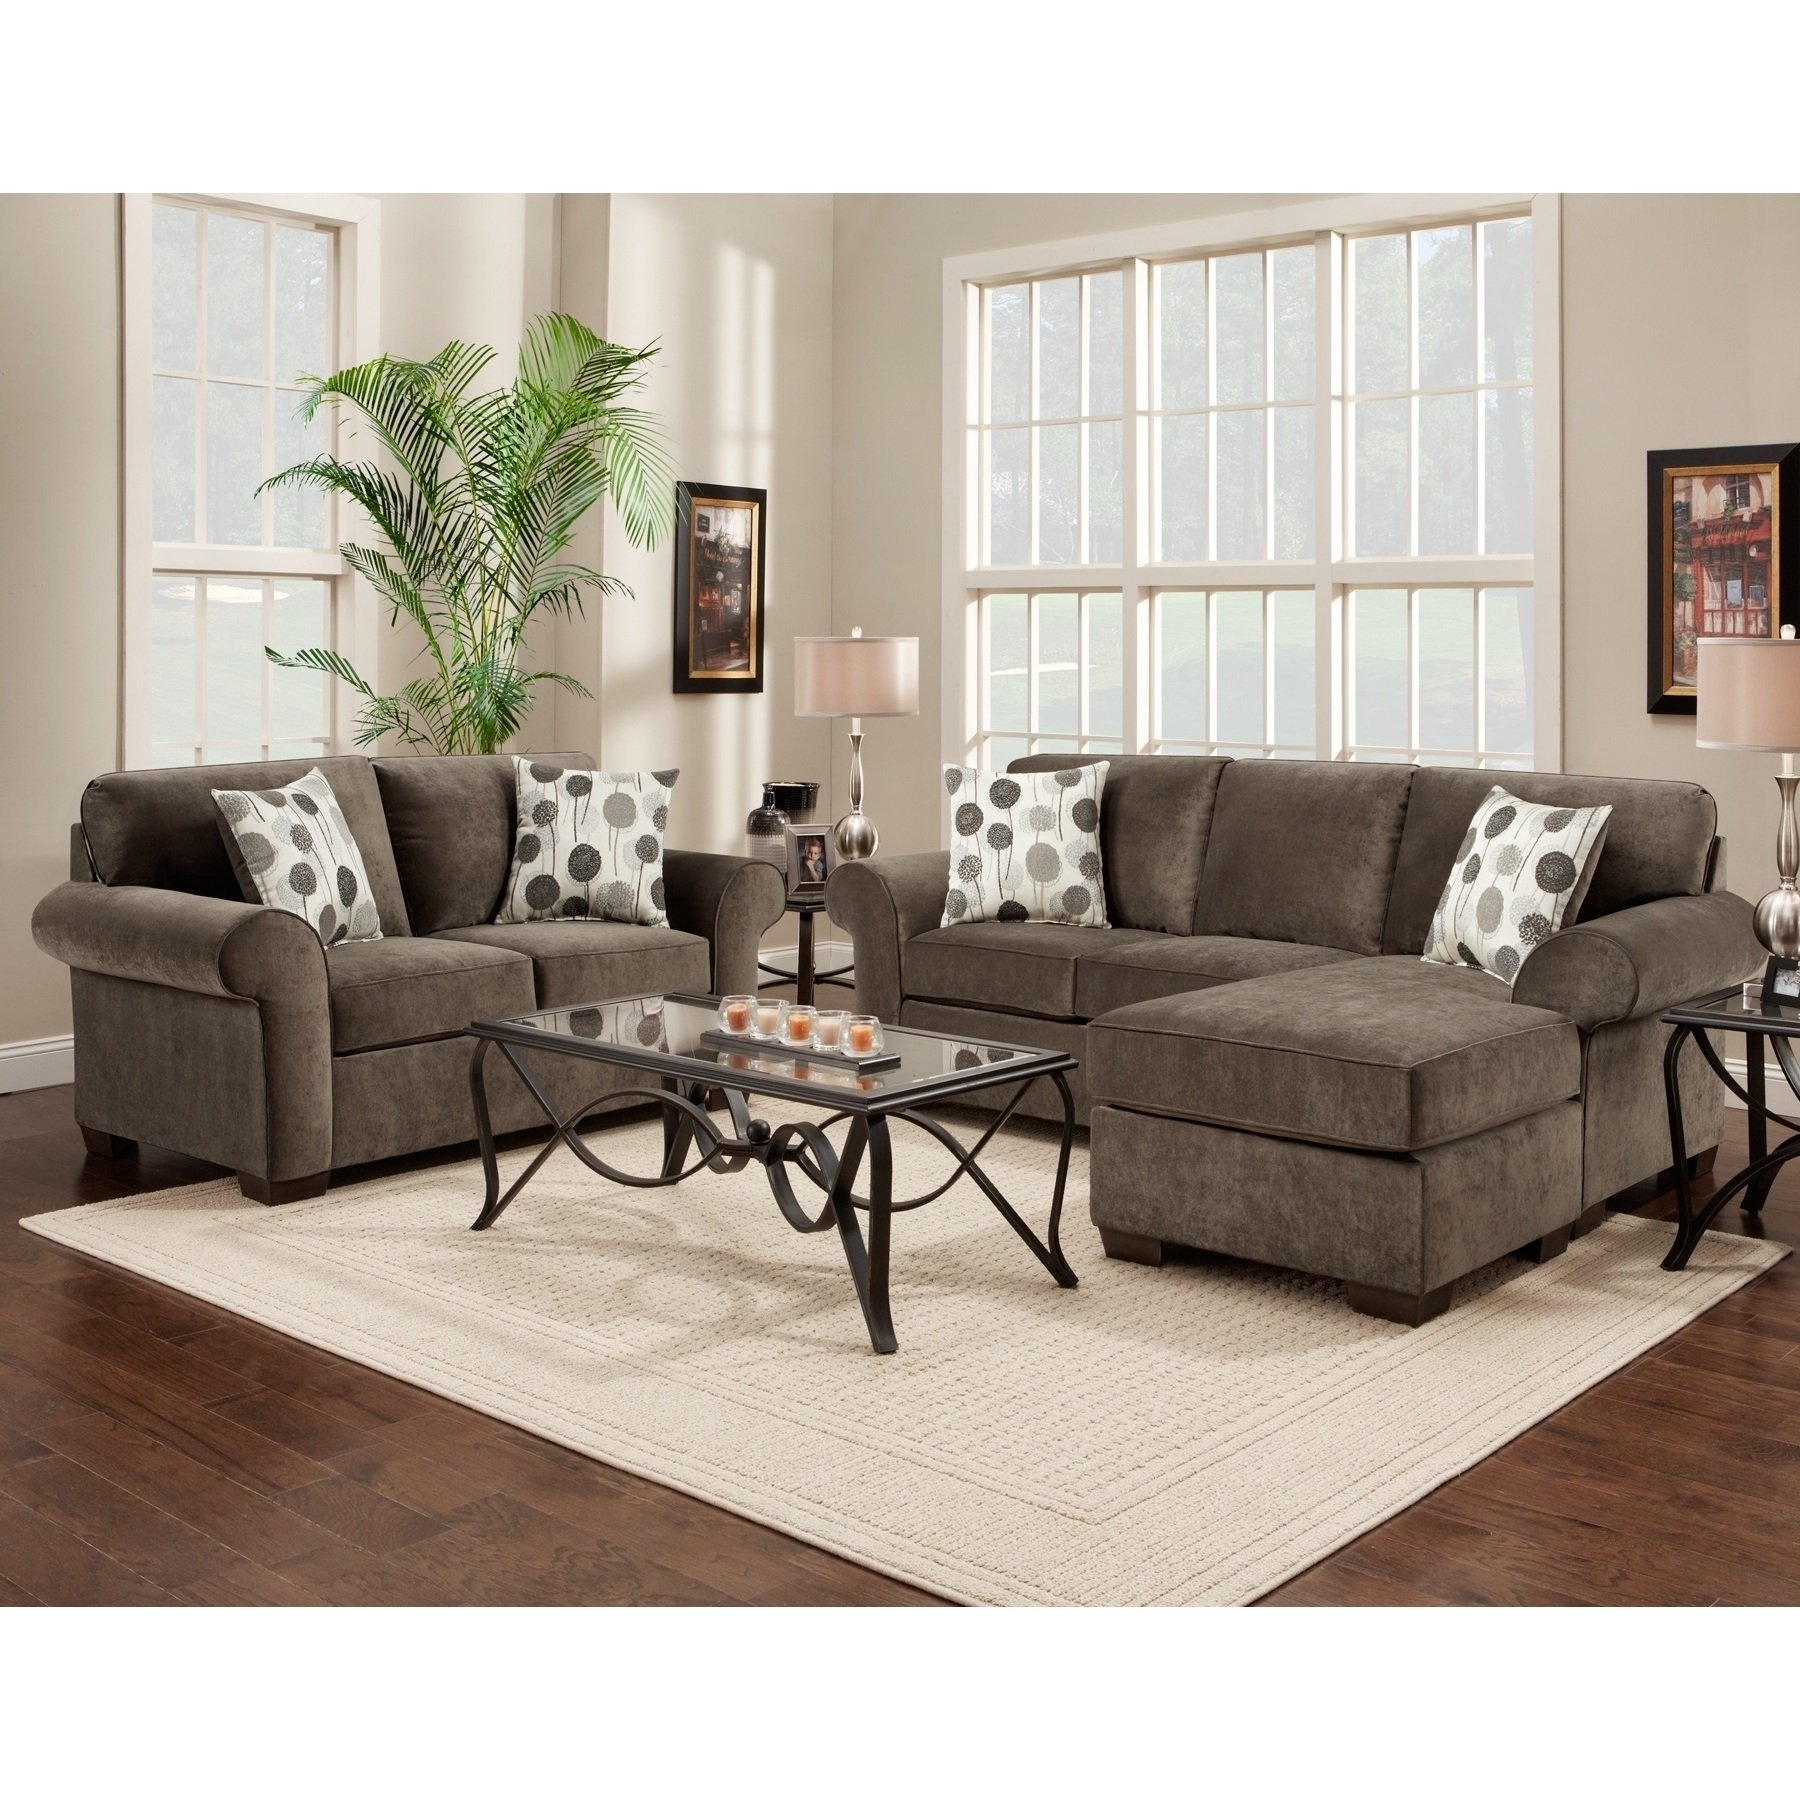 Loveseat Sectional | Whitecraftwoodard Mona Wicker Right Arm With Regard To Declan 3 Piece Power Reclining Sectionals With Right Facing Console Loveseat (Image 19 of 25)